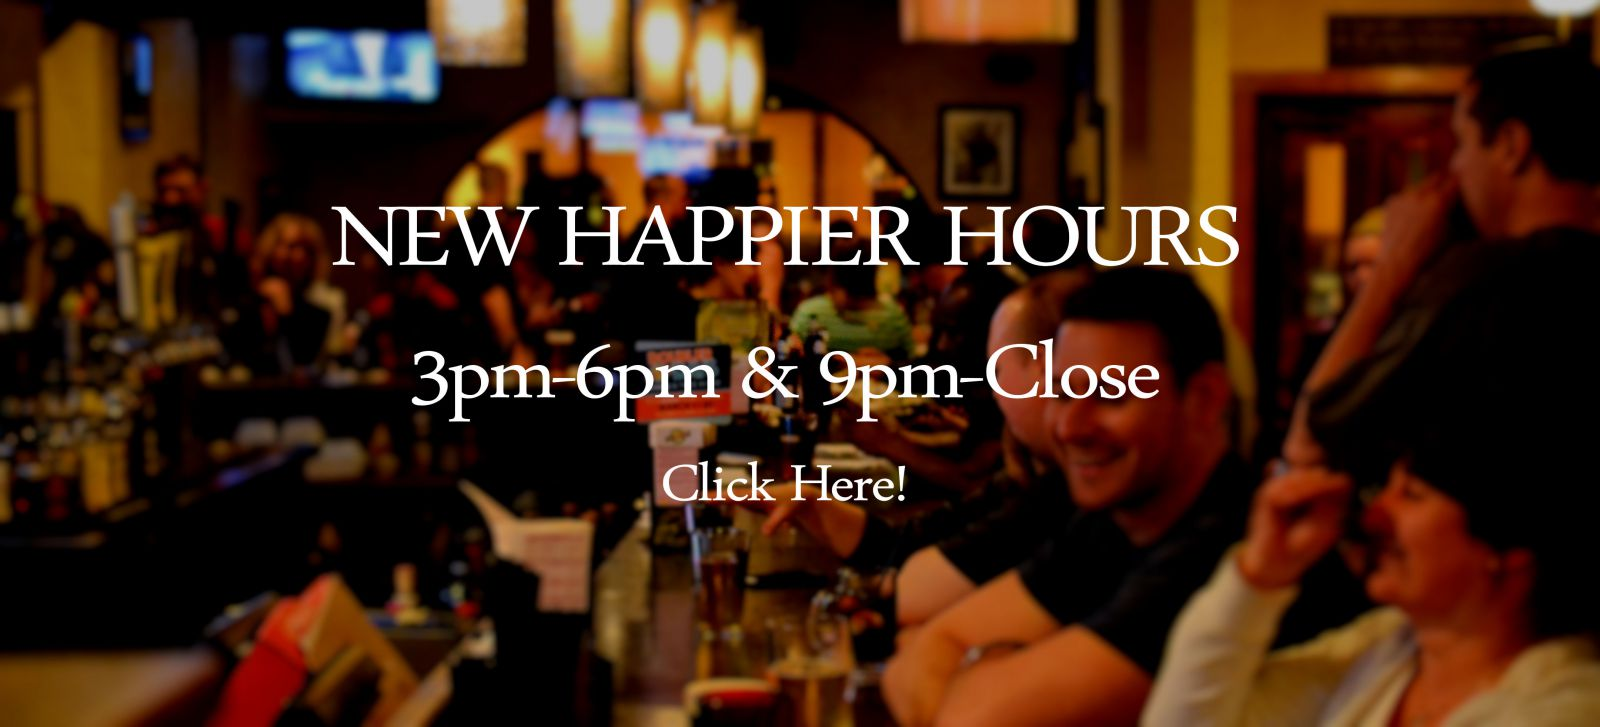 New Happier Hours!